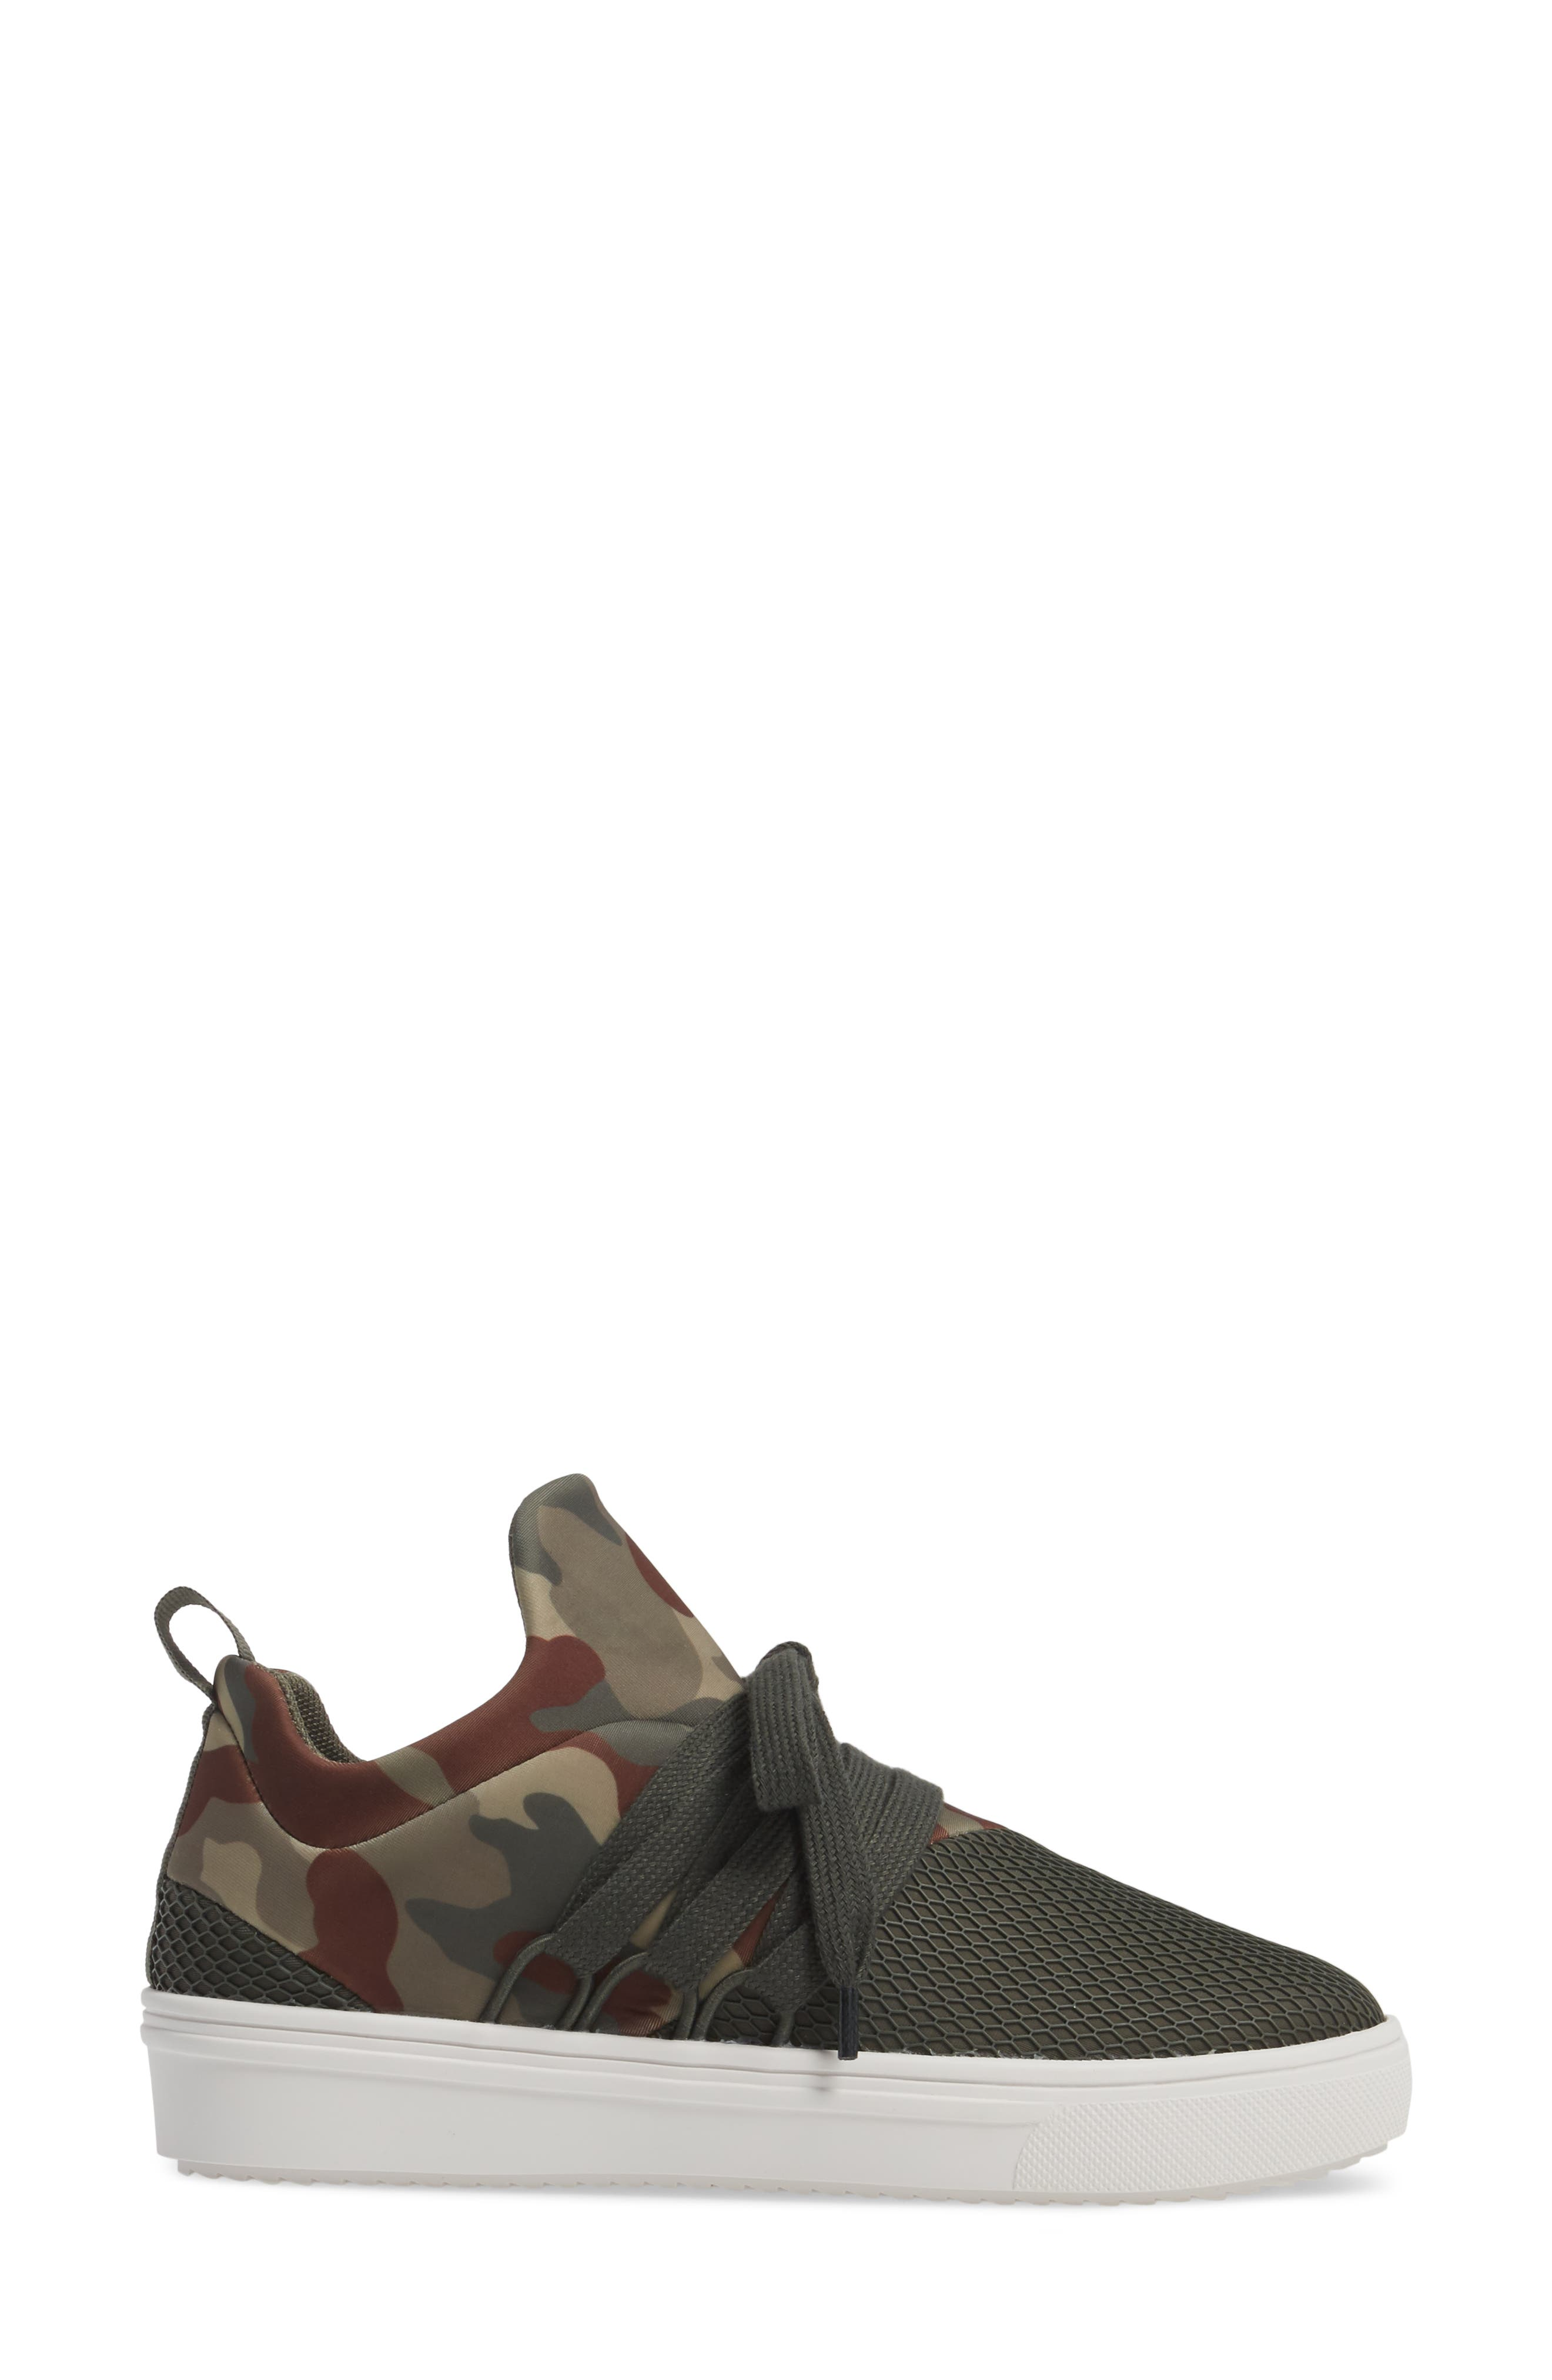 Lancer Sneaker,                             Alternate thumbnail 25, color,